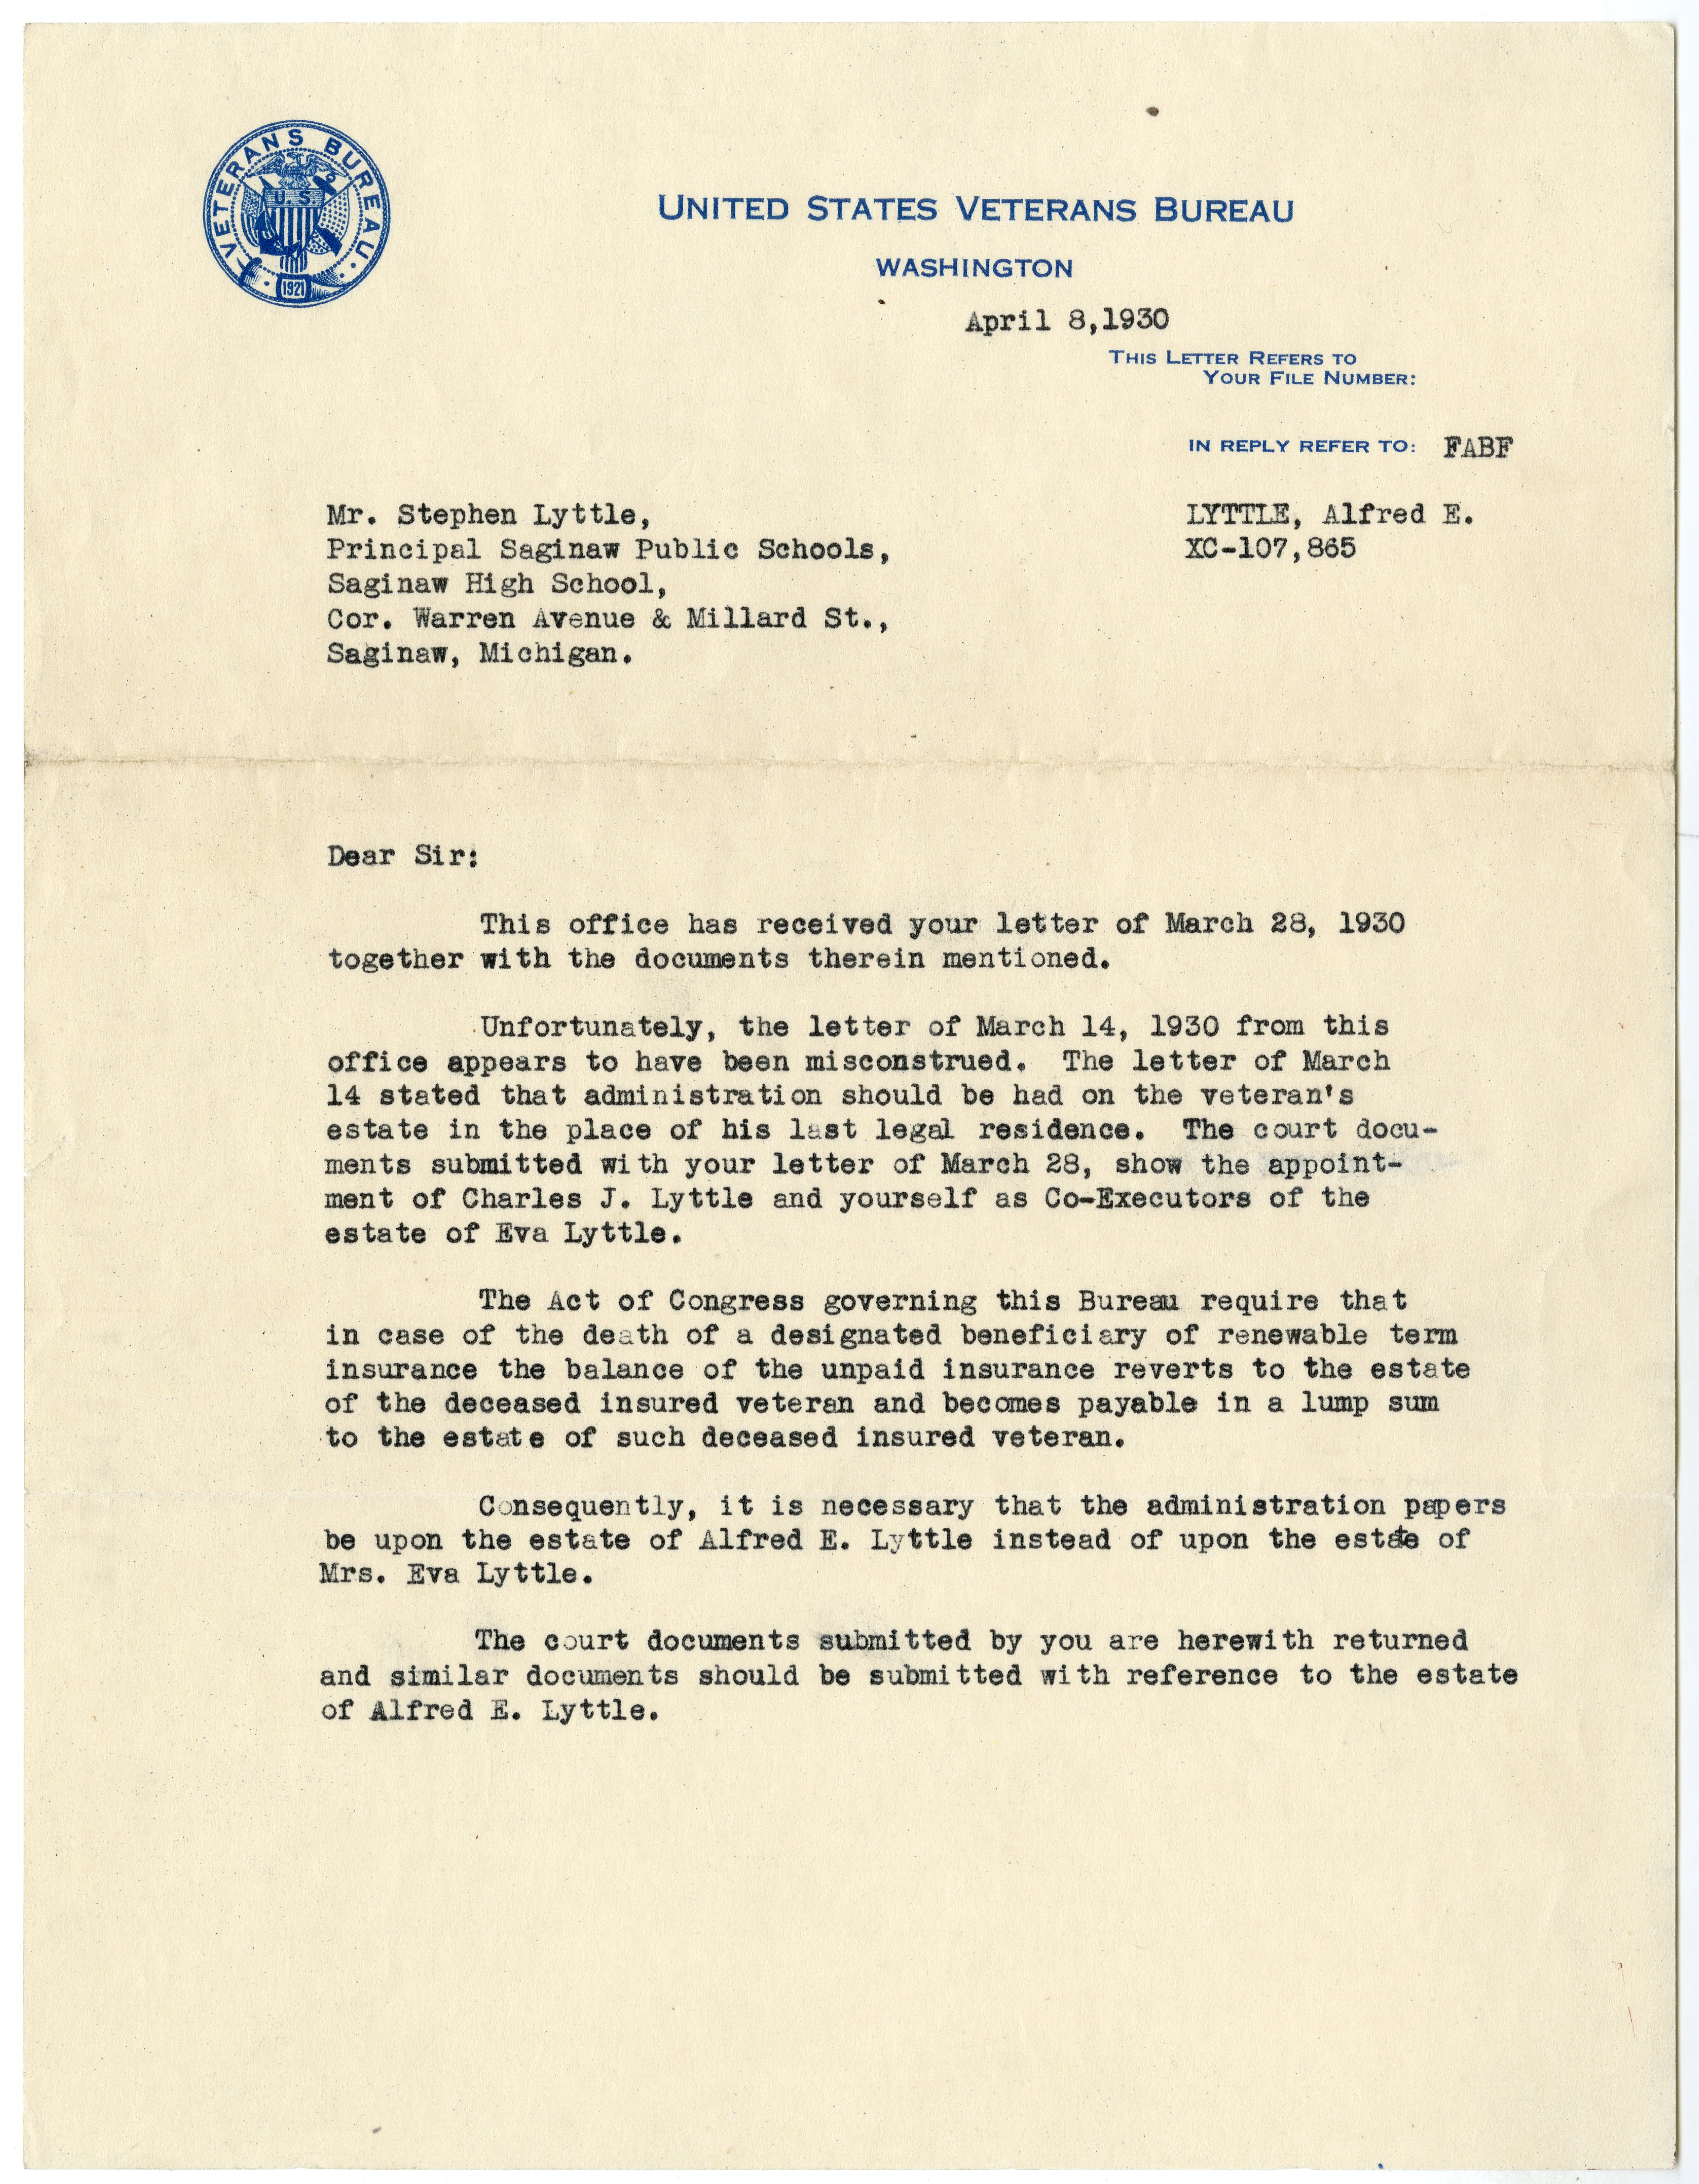 Polar bear collection alfred e lyttle papers letter to sh lyttle from us veterans bureau april 8 1930 spiritdancerdesigns Gallery